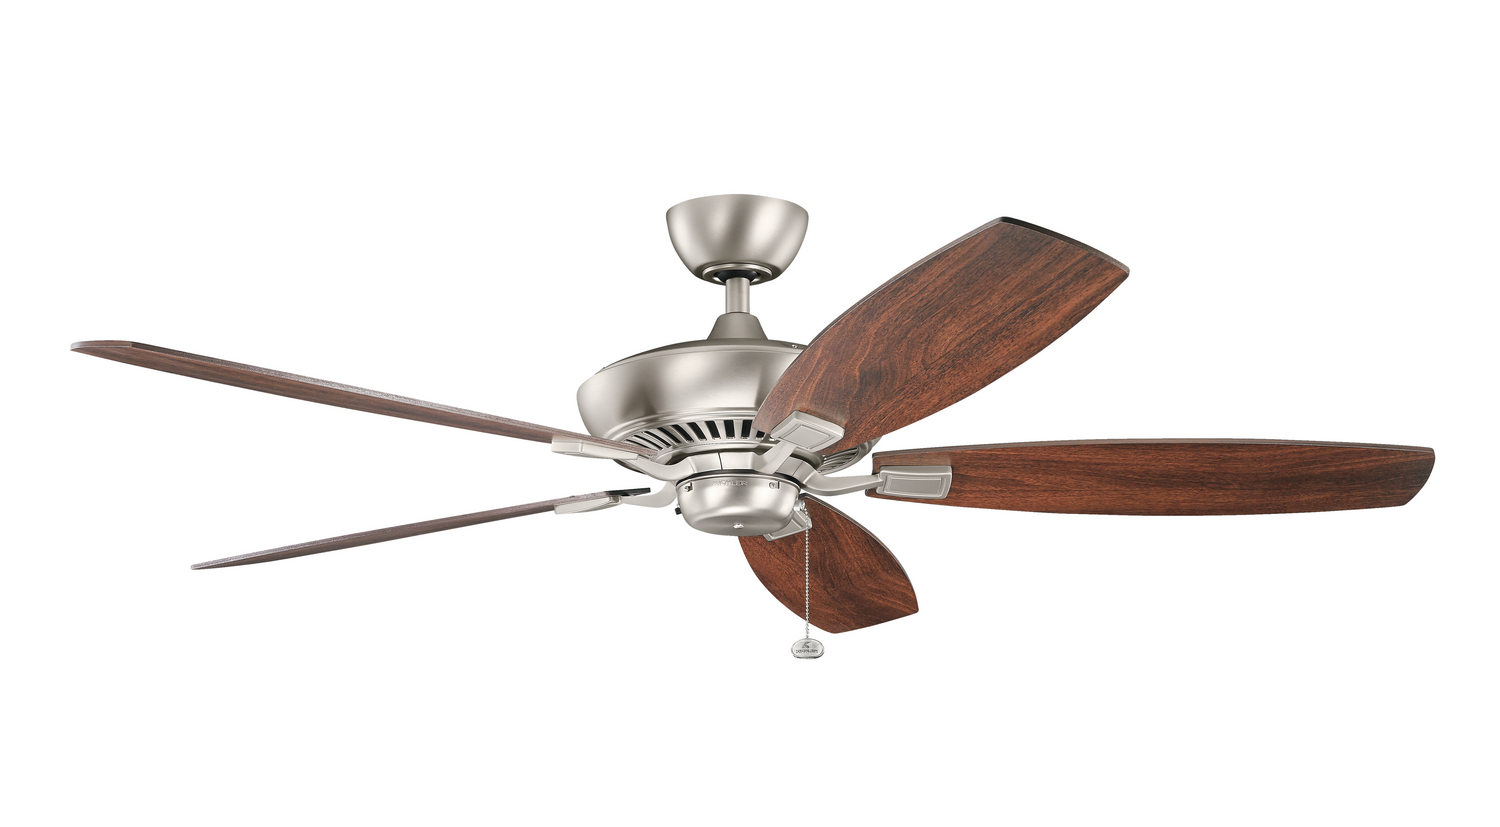 60 inchCeiling Fan from the Canfield collection by Kichler 300188NI